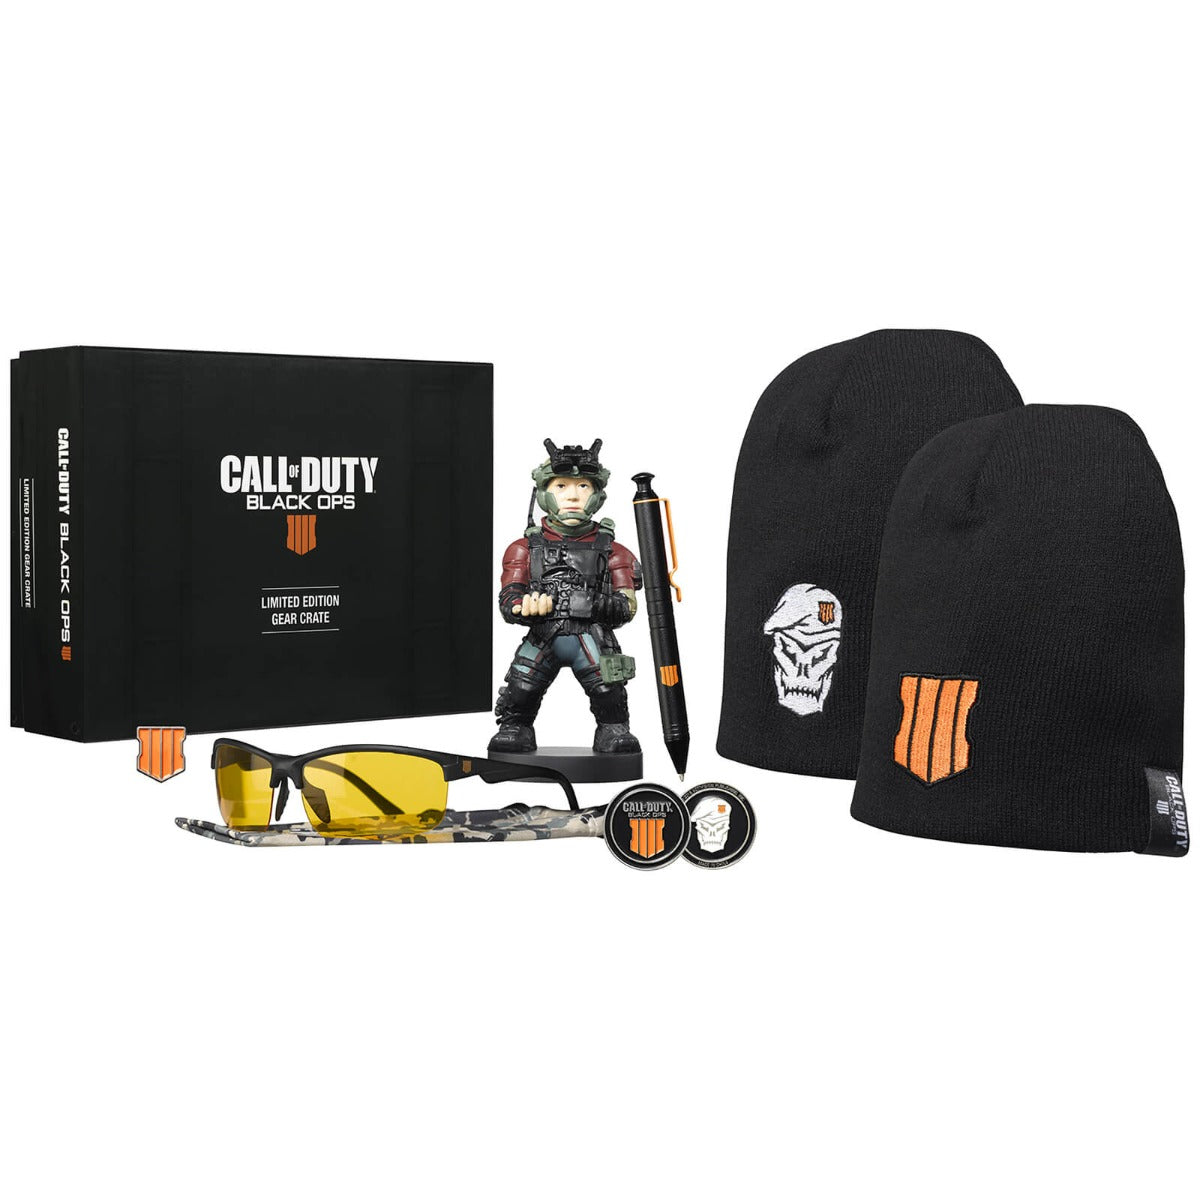 Call of Duty Black Ops IV Big Box Merch Crate